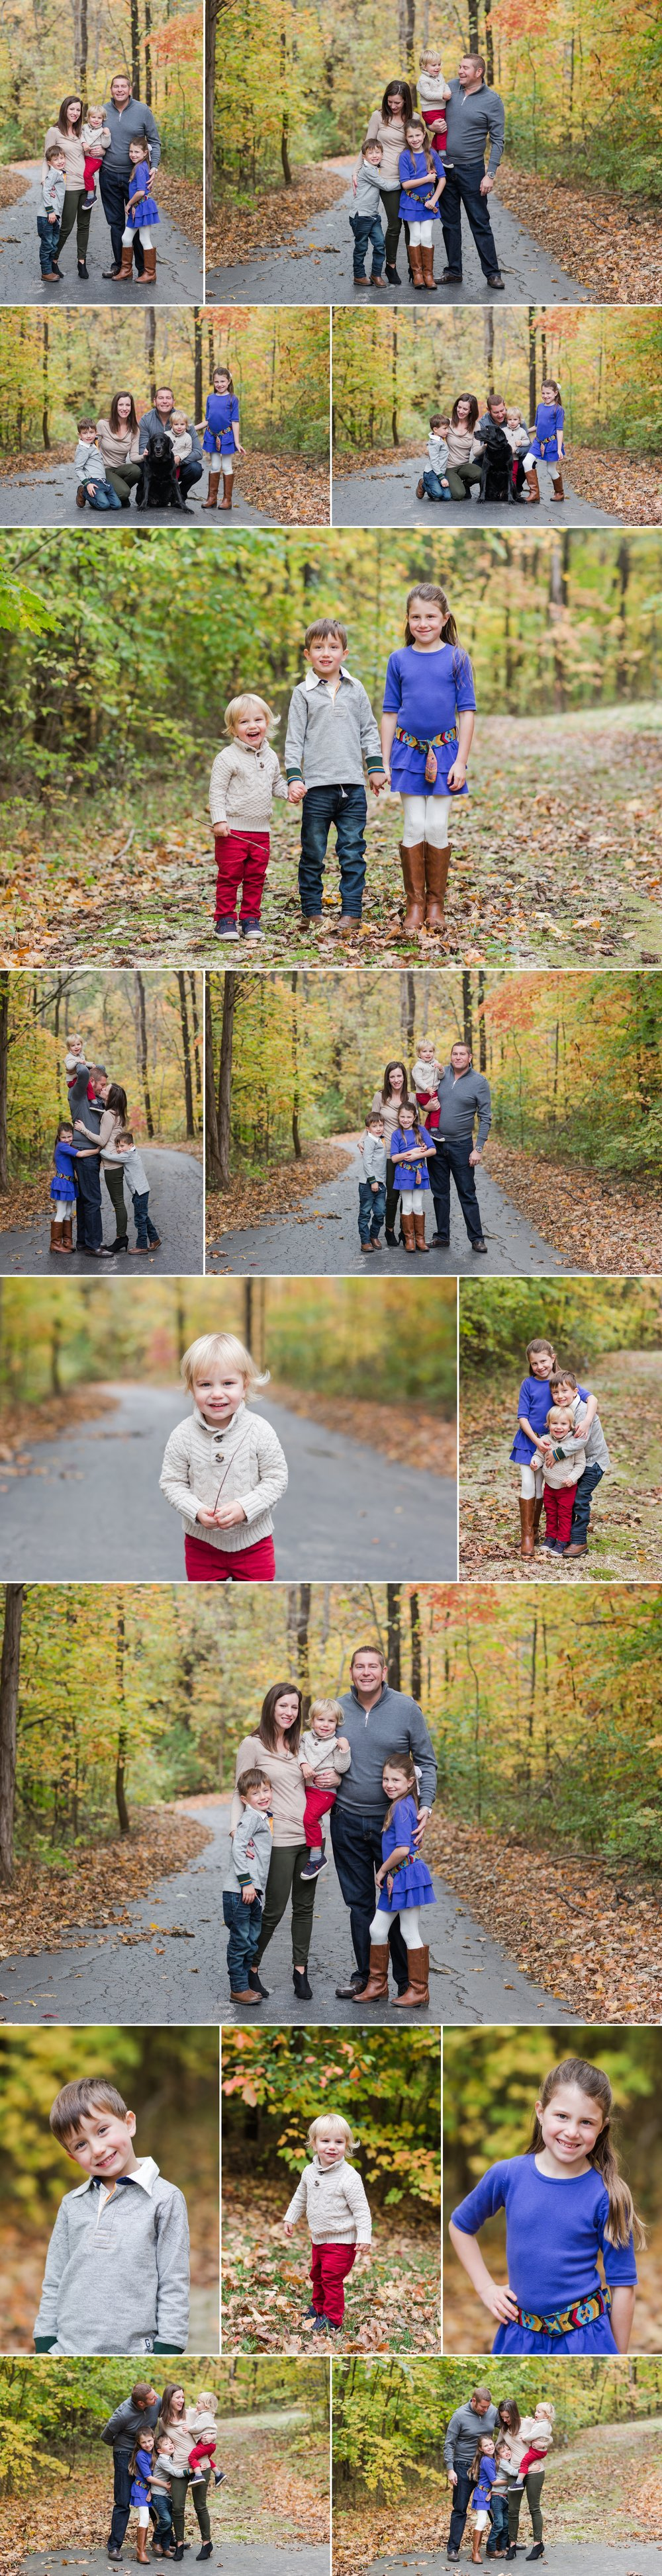 family_of_five_photography_fall_colors_session_leaves_dog_poses_missouri_st_louis_family_photographer_candid